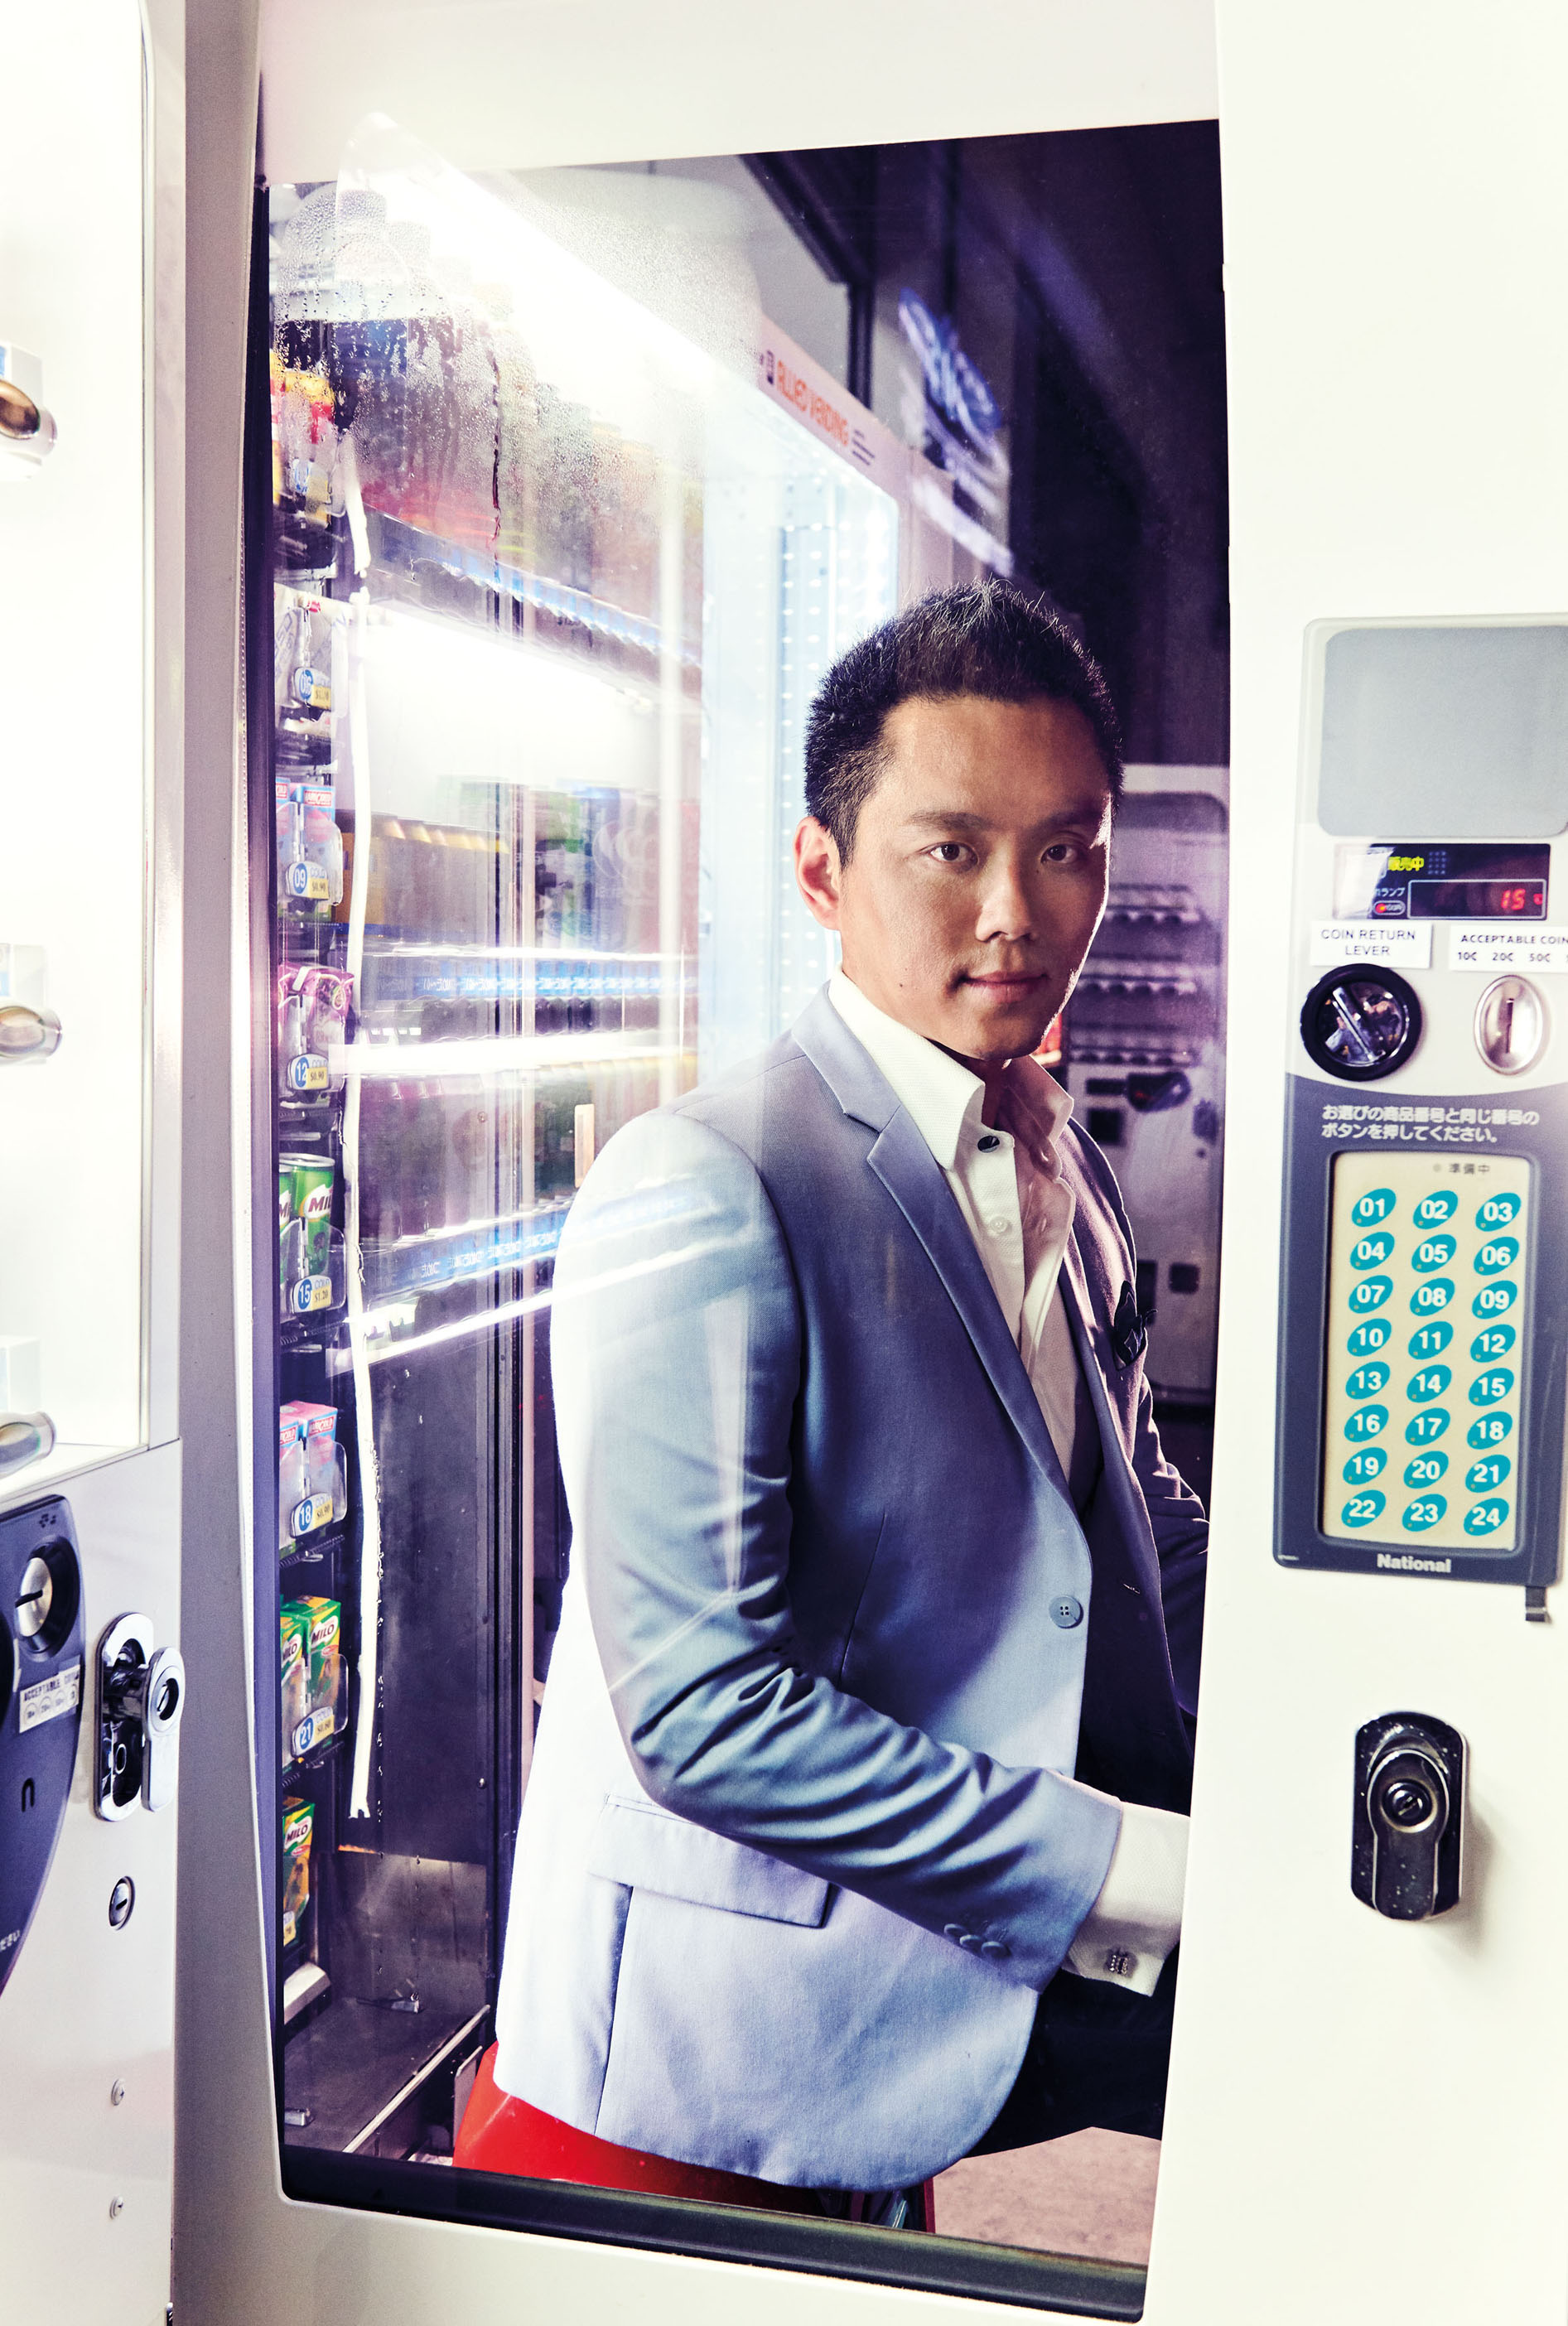 Vernon Tan and the queen of vending machines